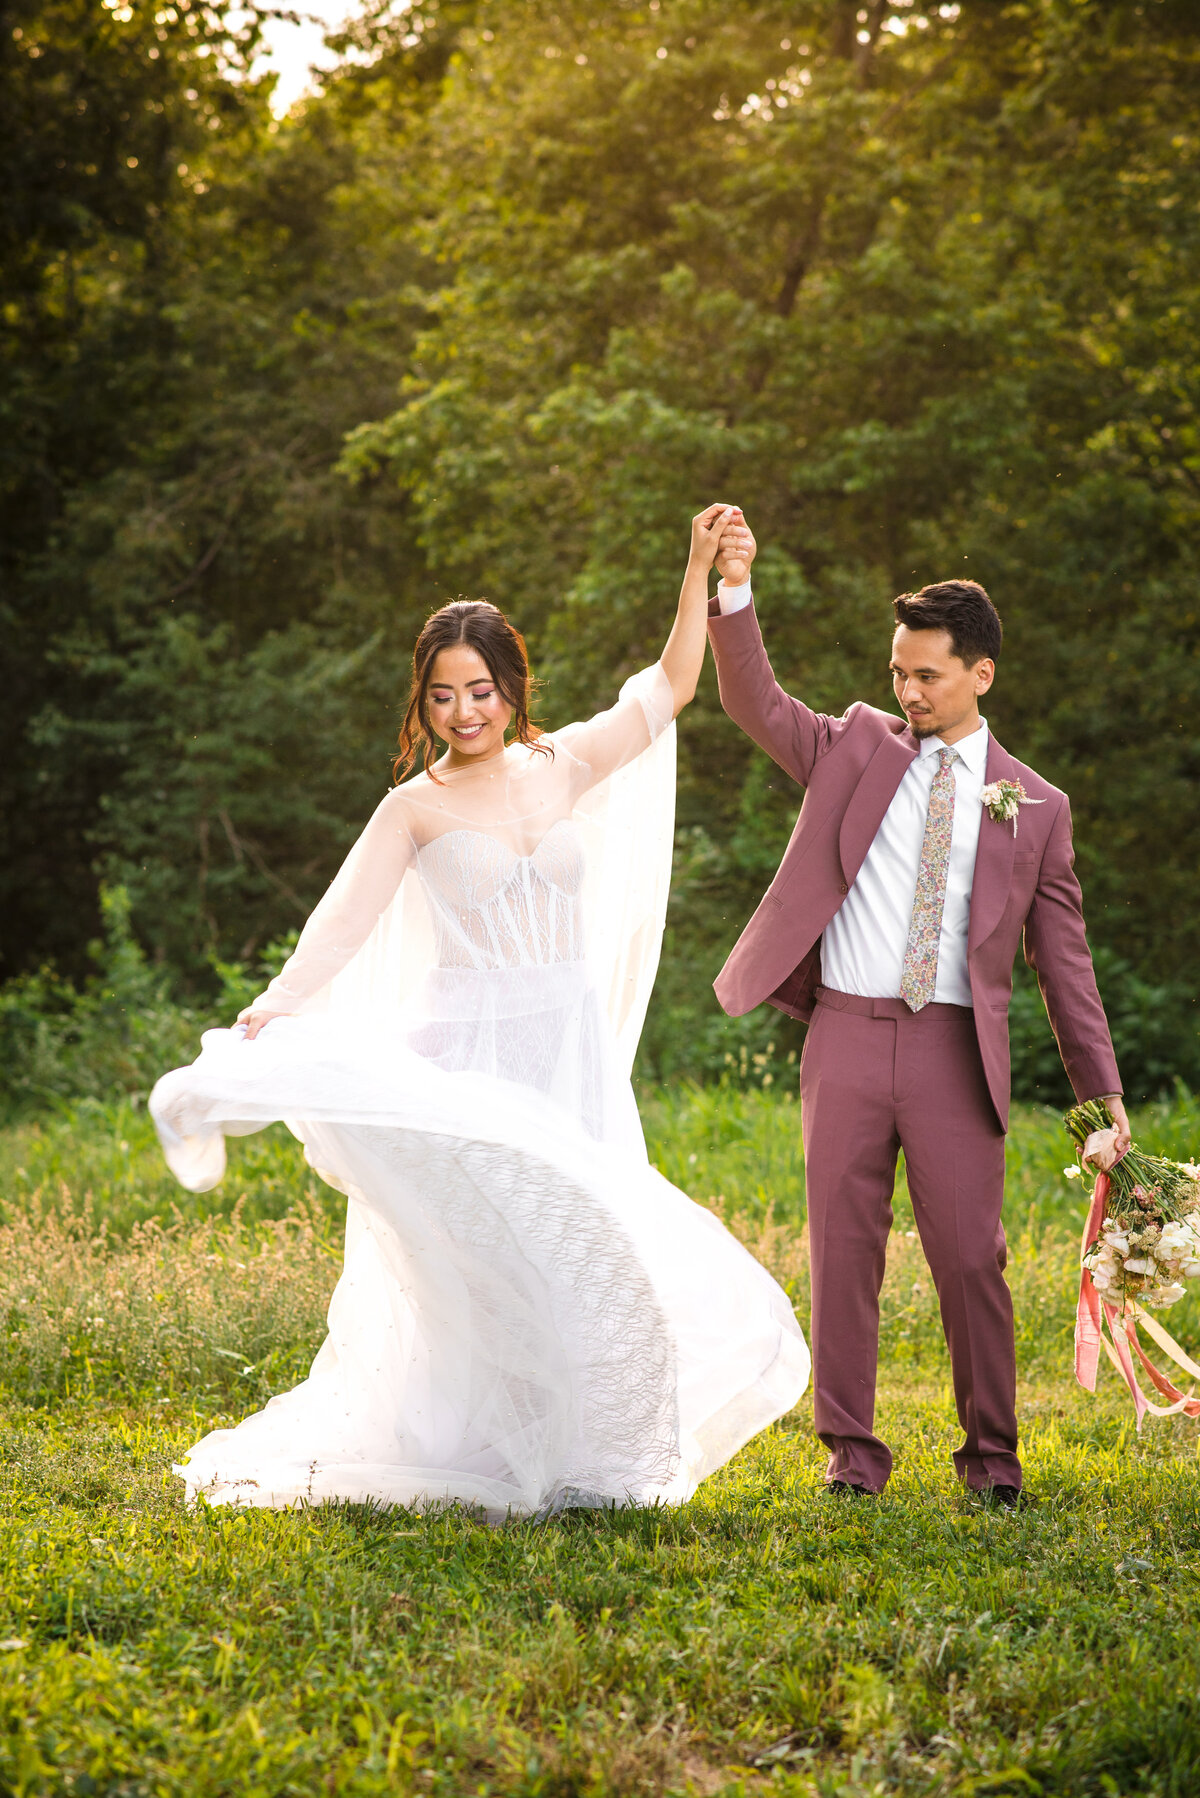 Asian bride and groom dancing outside